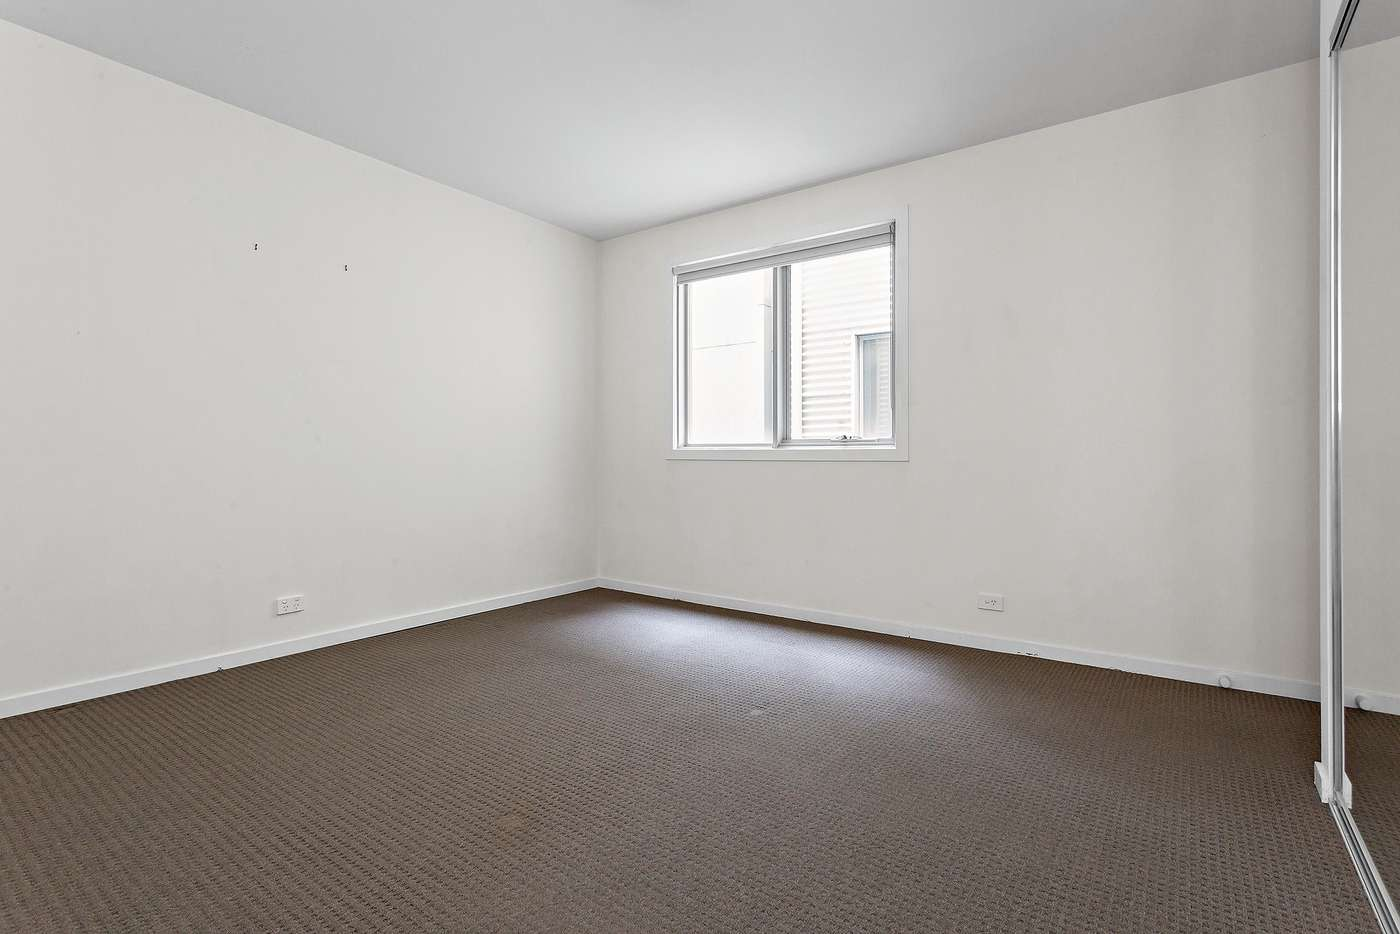 Sixth view of Homely apartment listing, 24/10 Breese Street, Brunswick VIC 3056